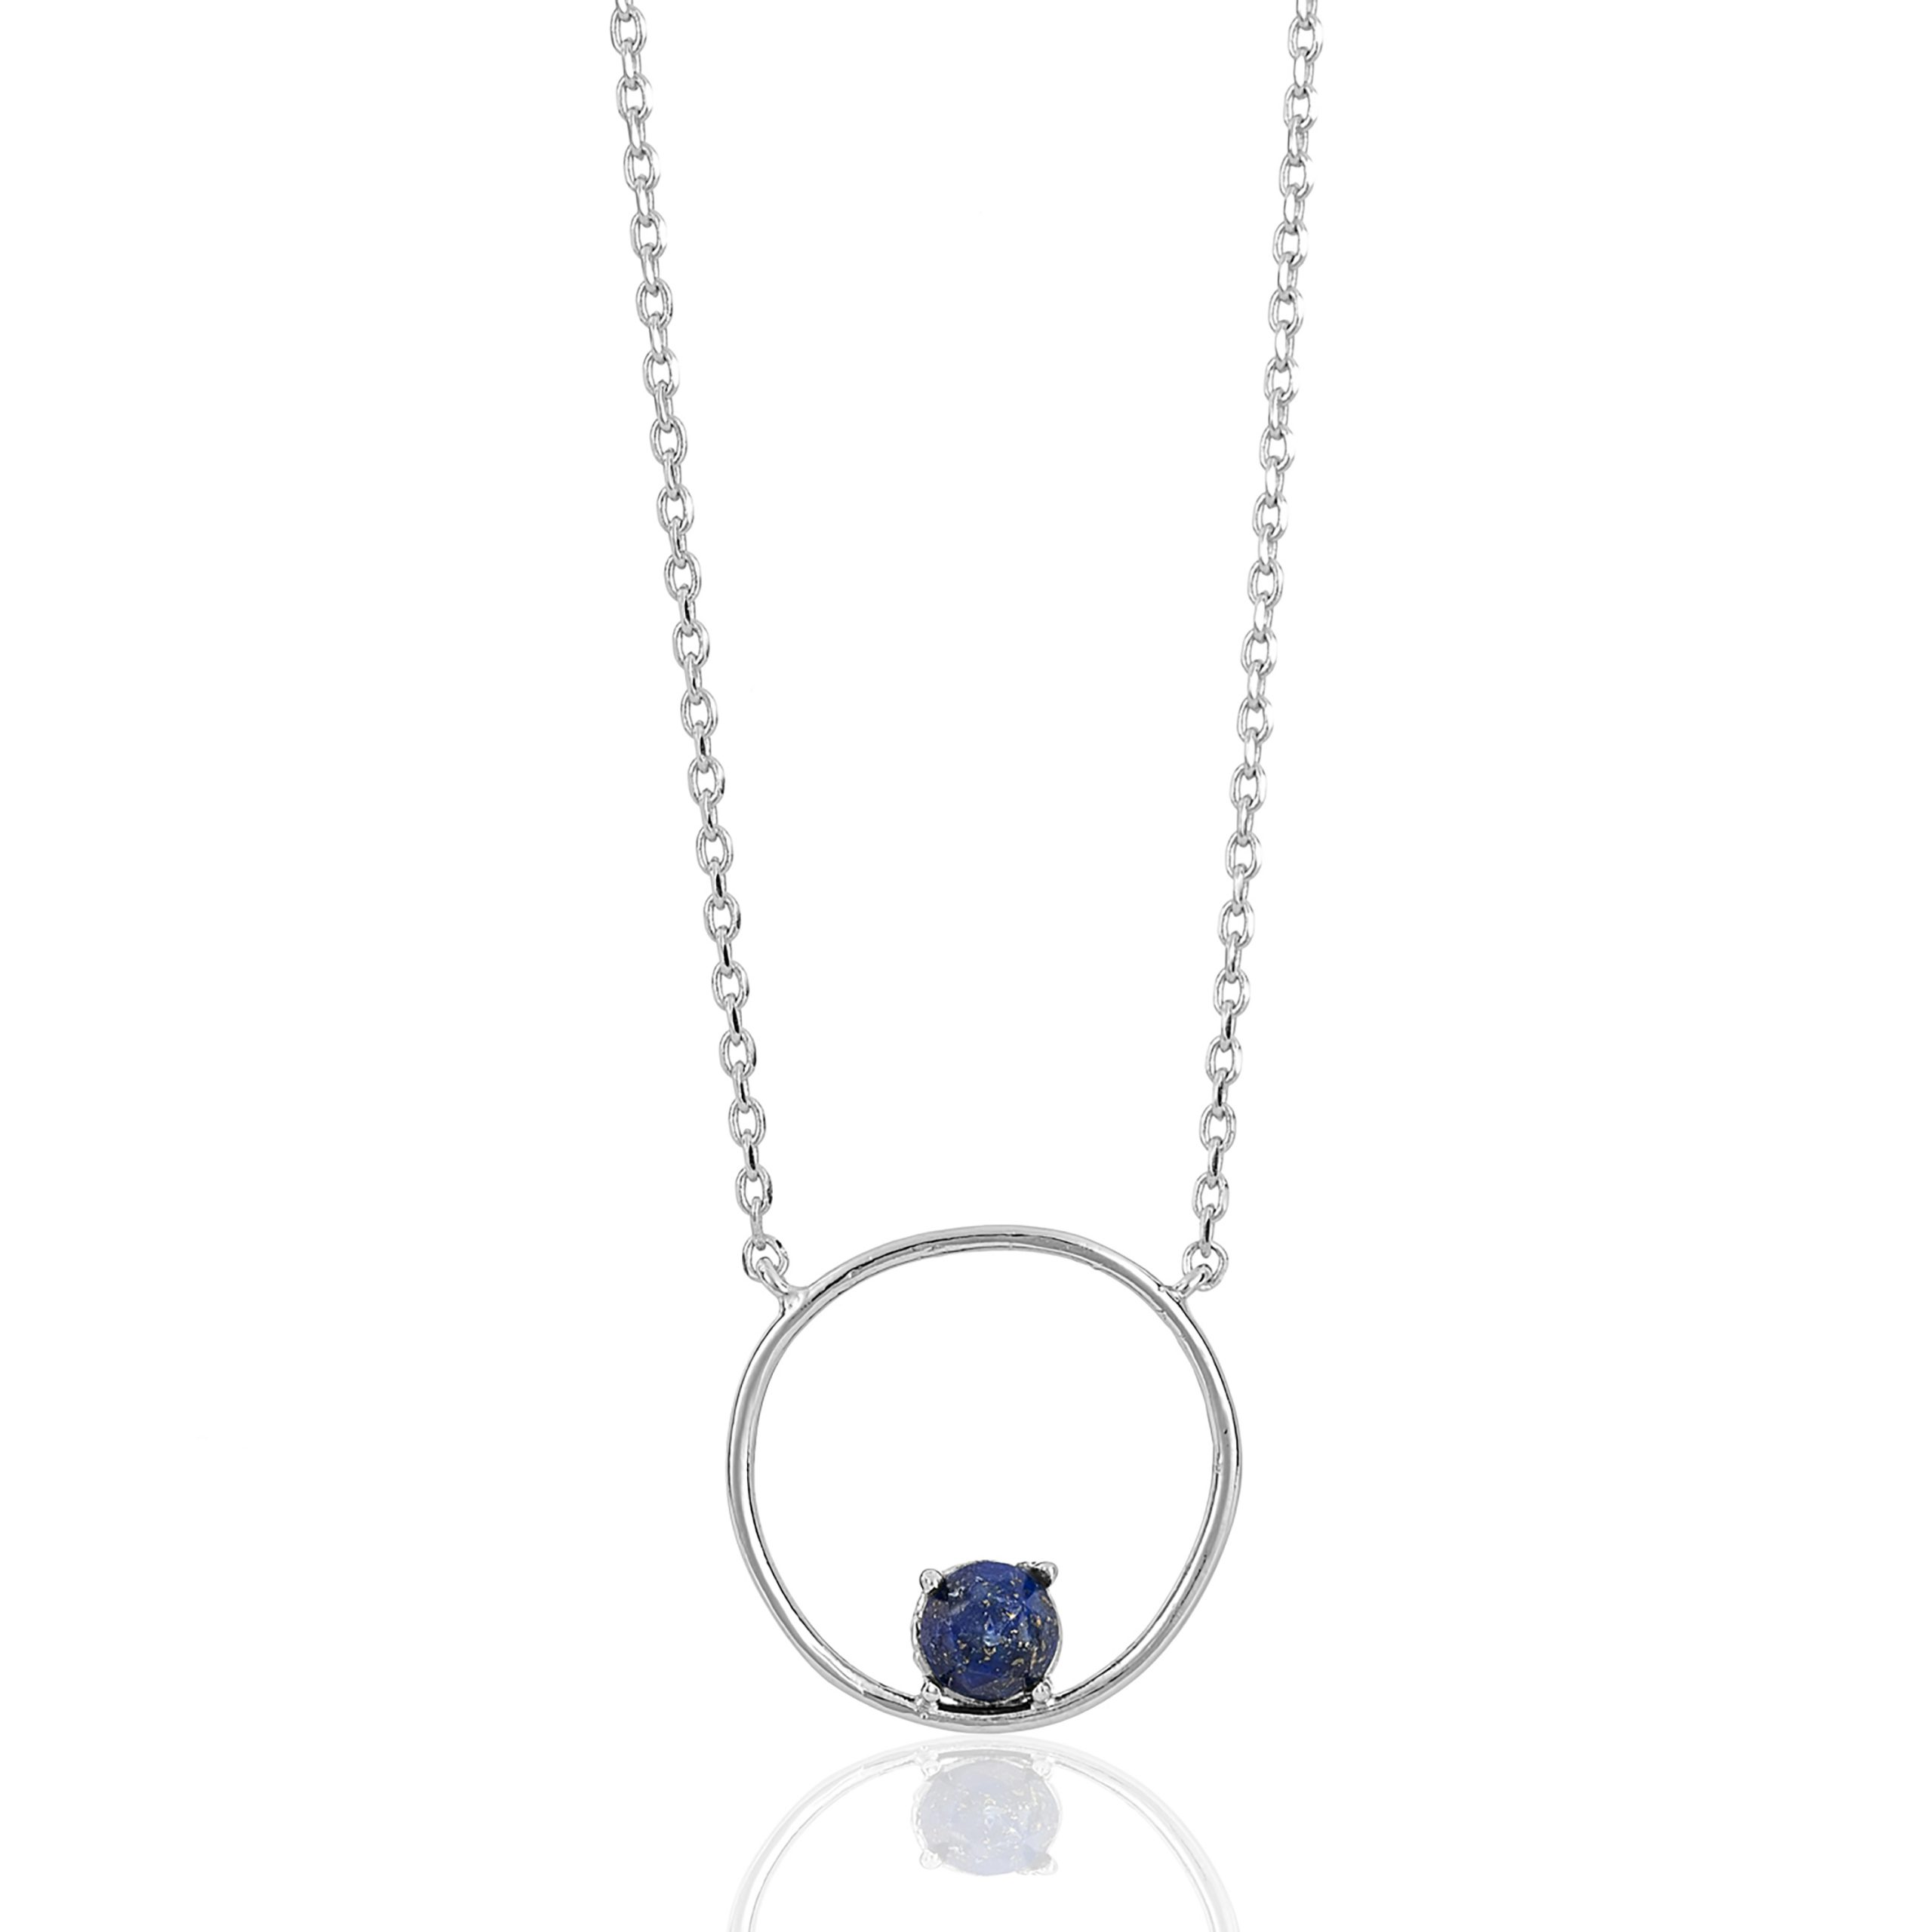 Silver Cosmic Midnight Blue Cirque Necklace